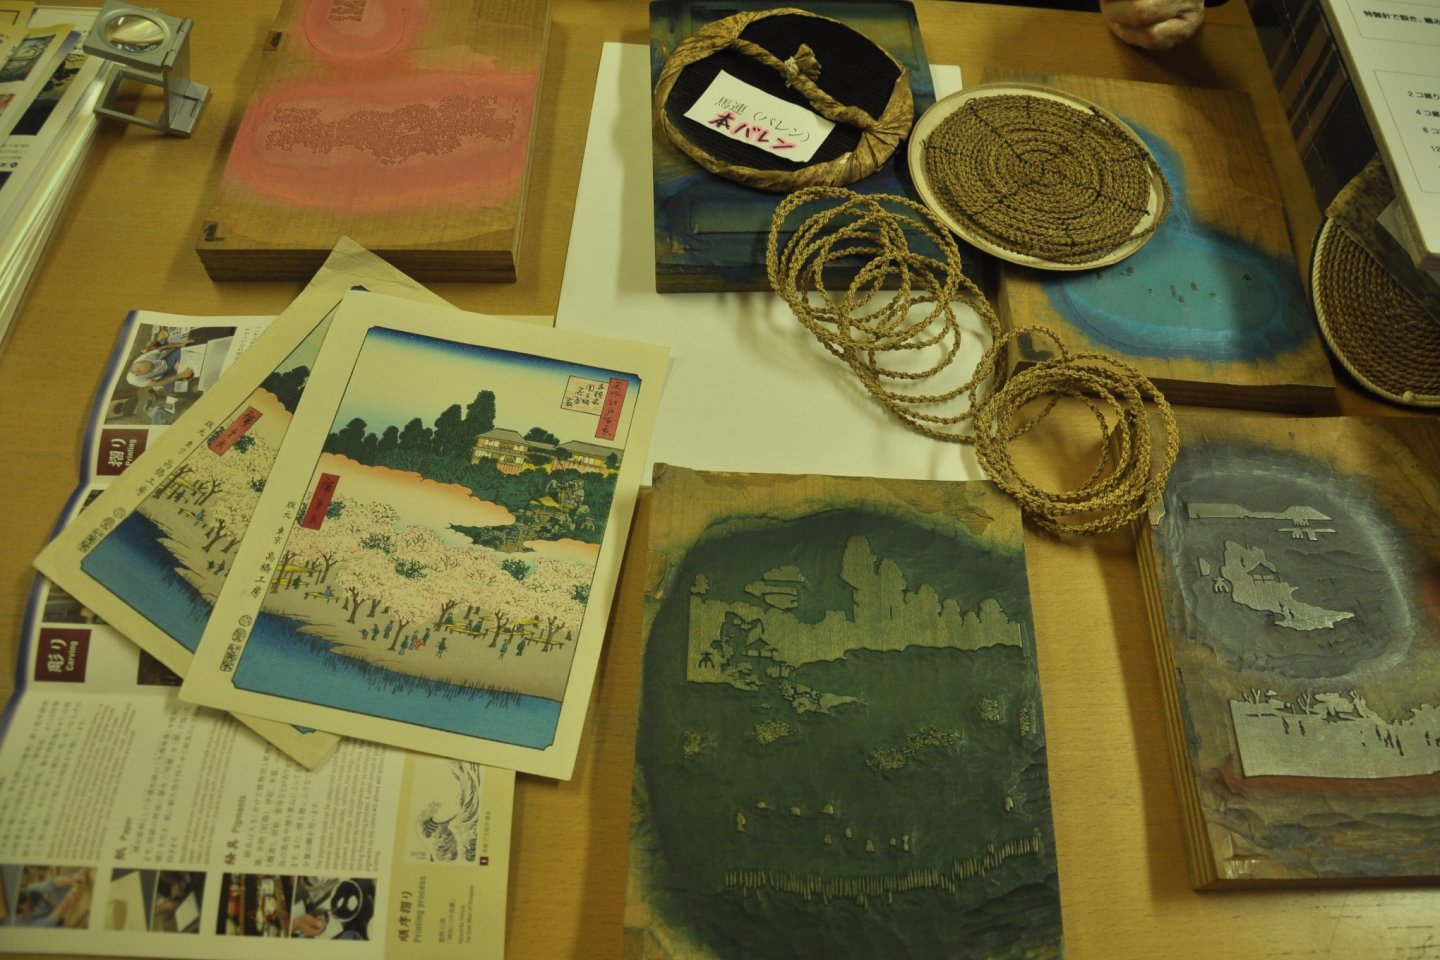 Different tools for making woodblock prints